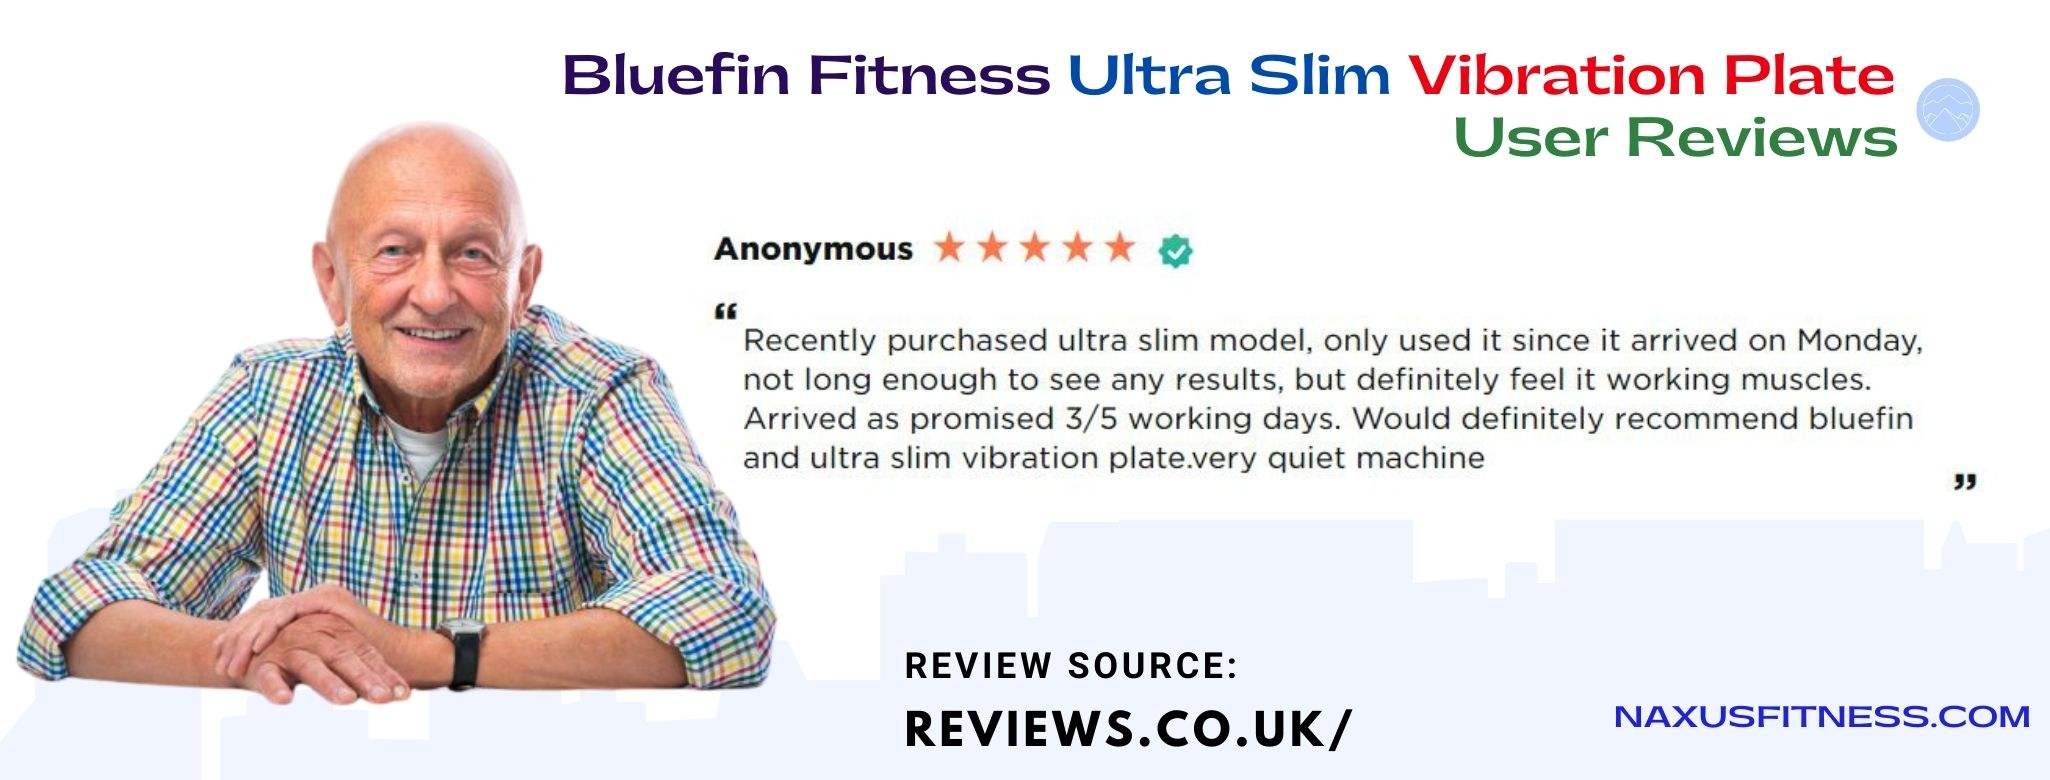 Bluefin ultra slim vibration platform features great for older people